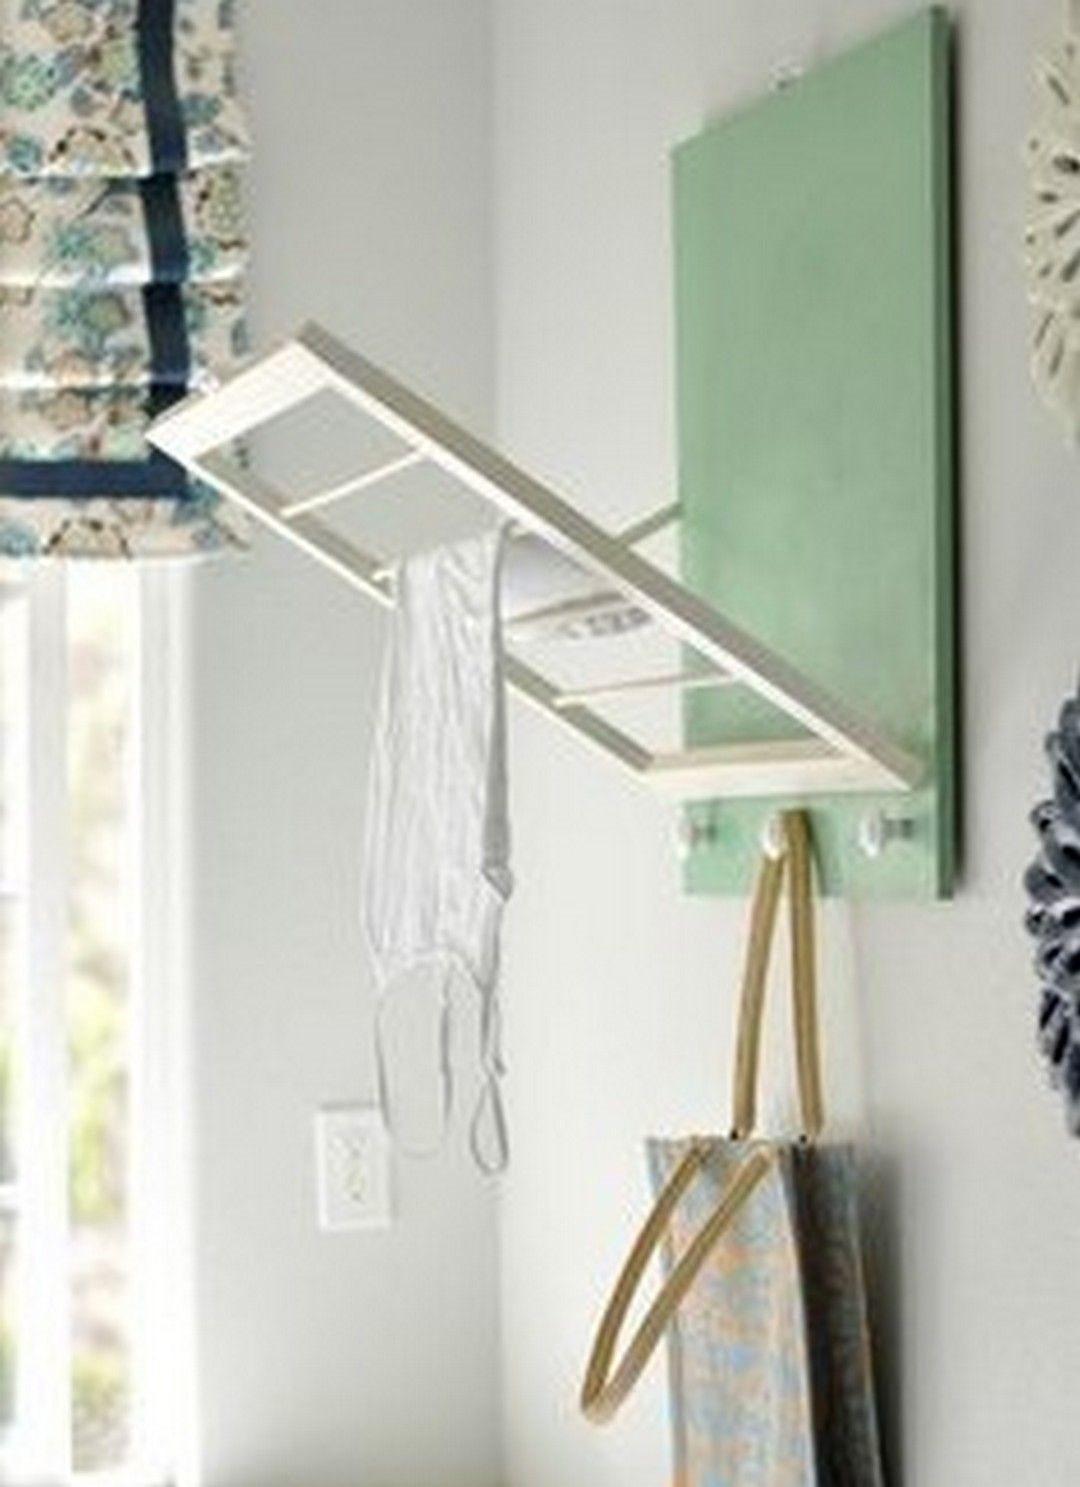 Diy drying rack tutorial DIY Little Action But Big Impact For Your Laundry Room Ideas